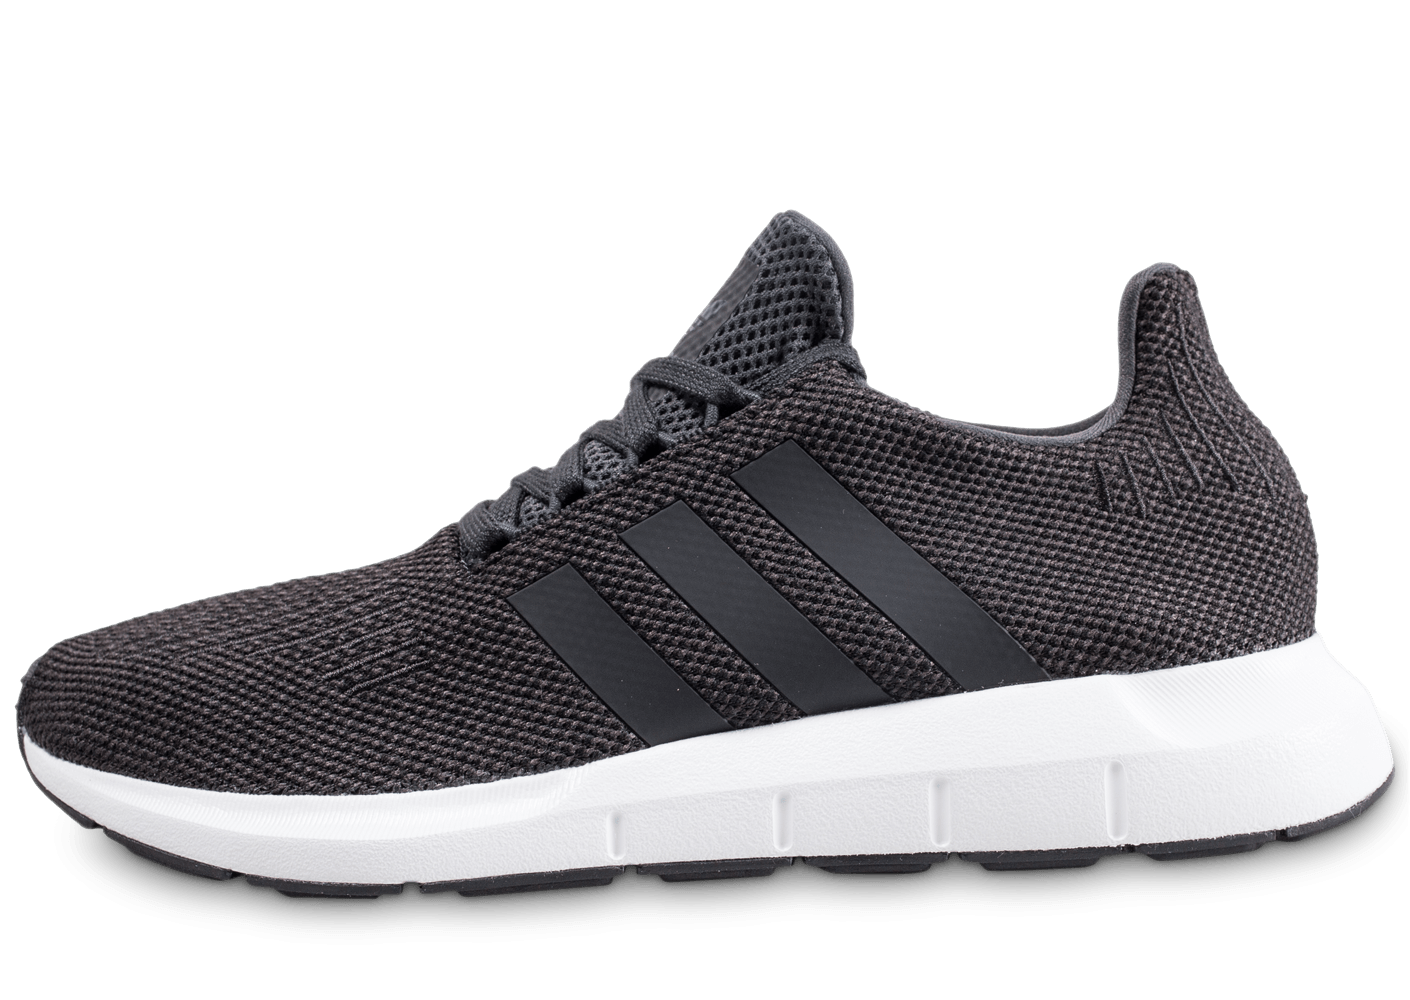 info for aecf9 27f2e adidas Swift Run grise et noire - Chaussures Baskets homme - Chausport